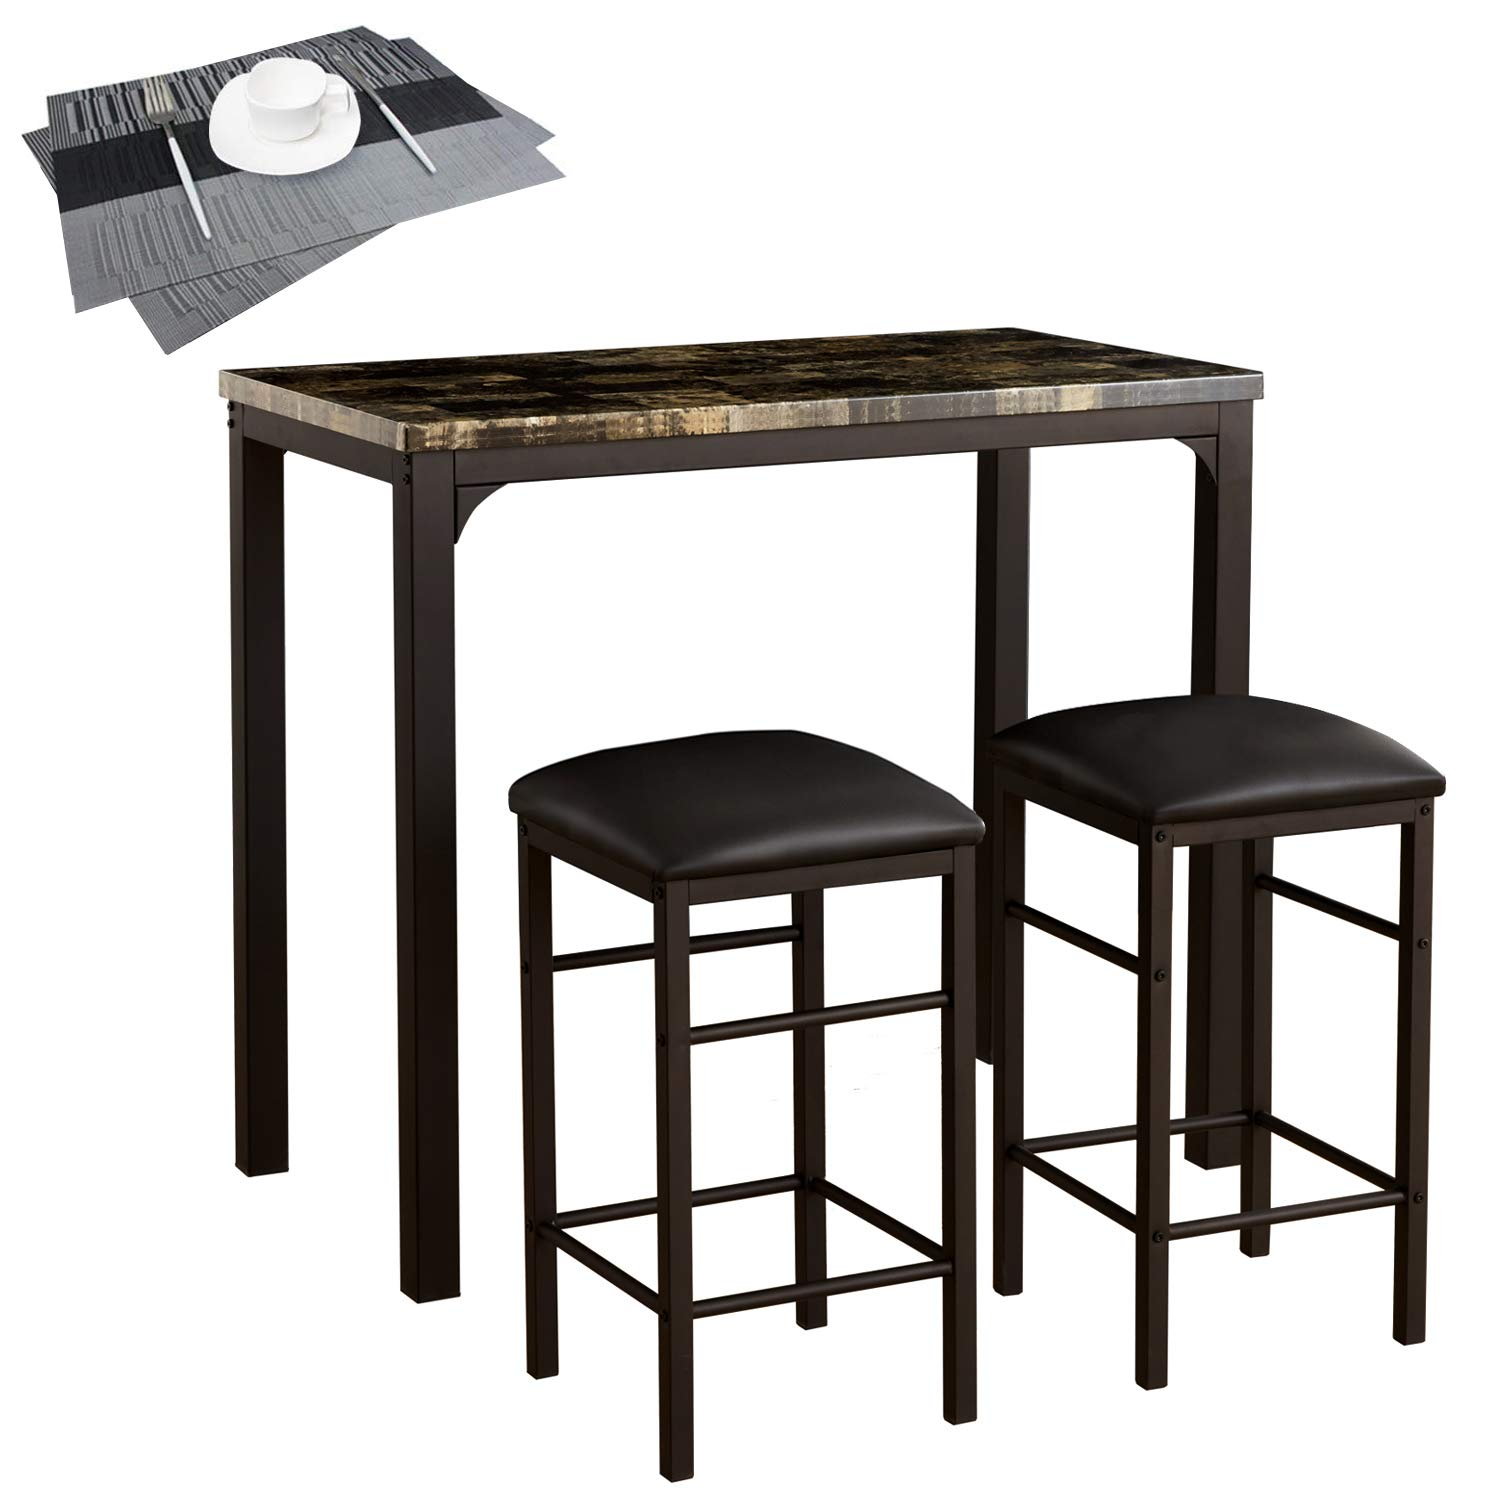 VECELO Faux Marble Dining 3-Pieces High/Pub Table Set with 2 Bar Stools-2 Placemats Included, Black by VECELO